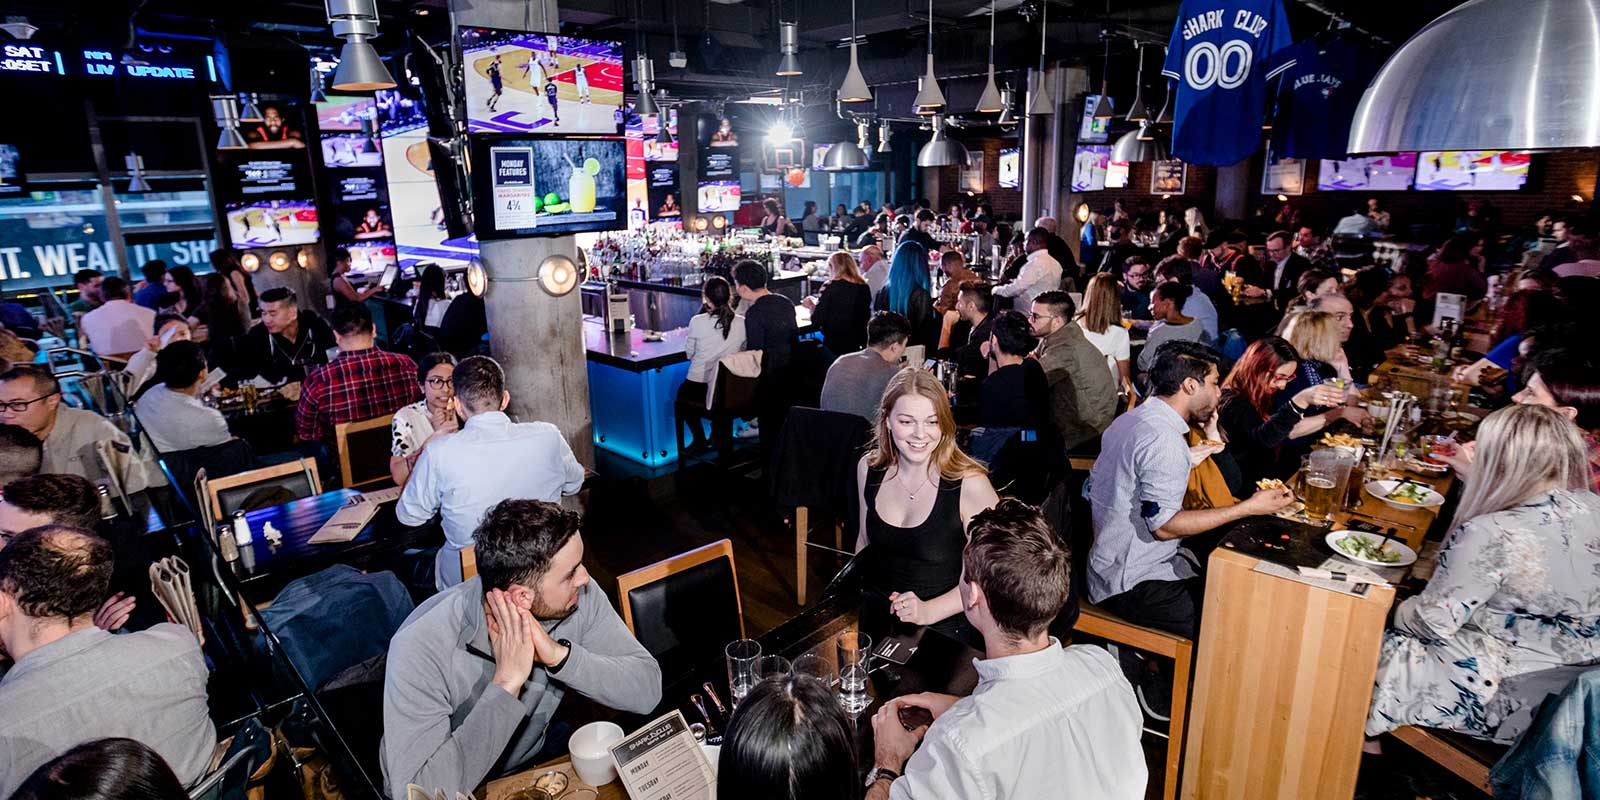 Shark Club Sports Bar & Grill Toronto - Gallery 2